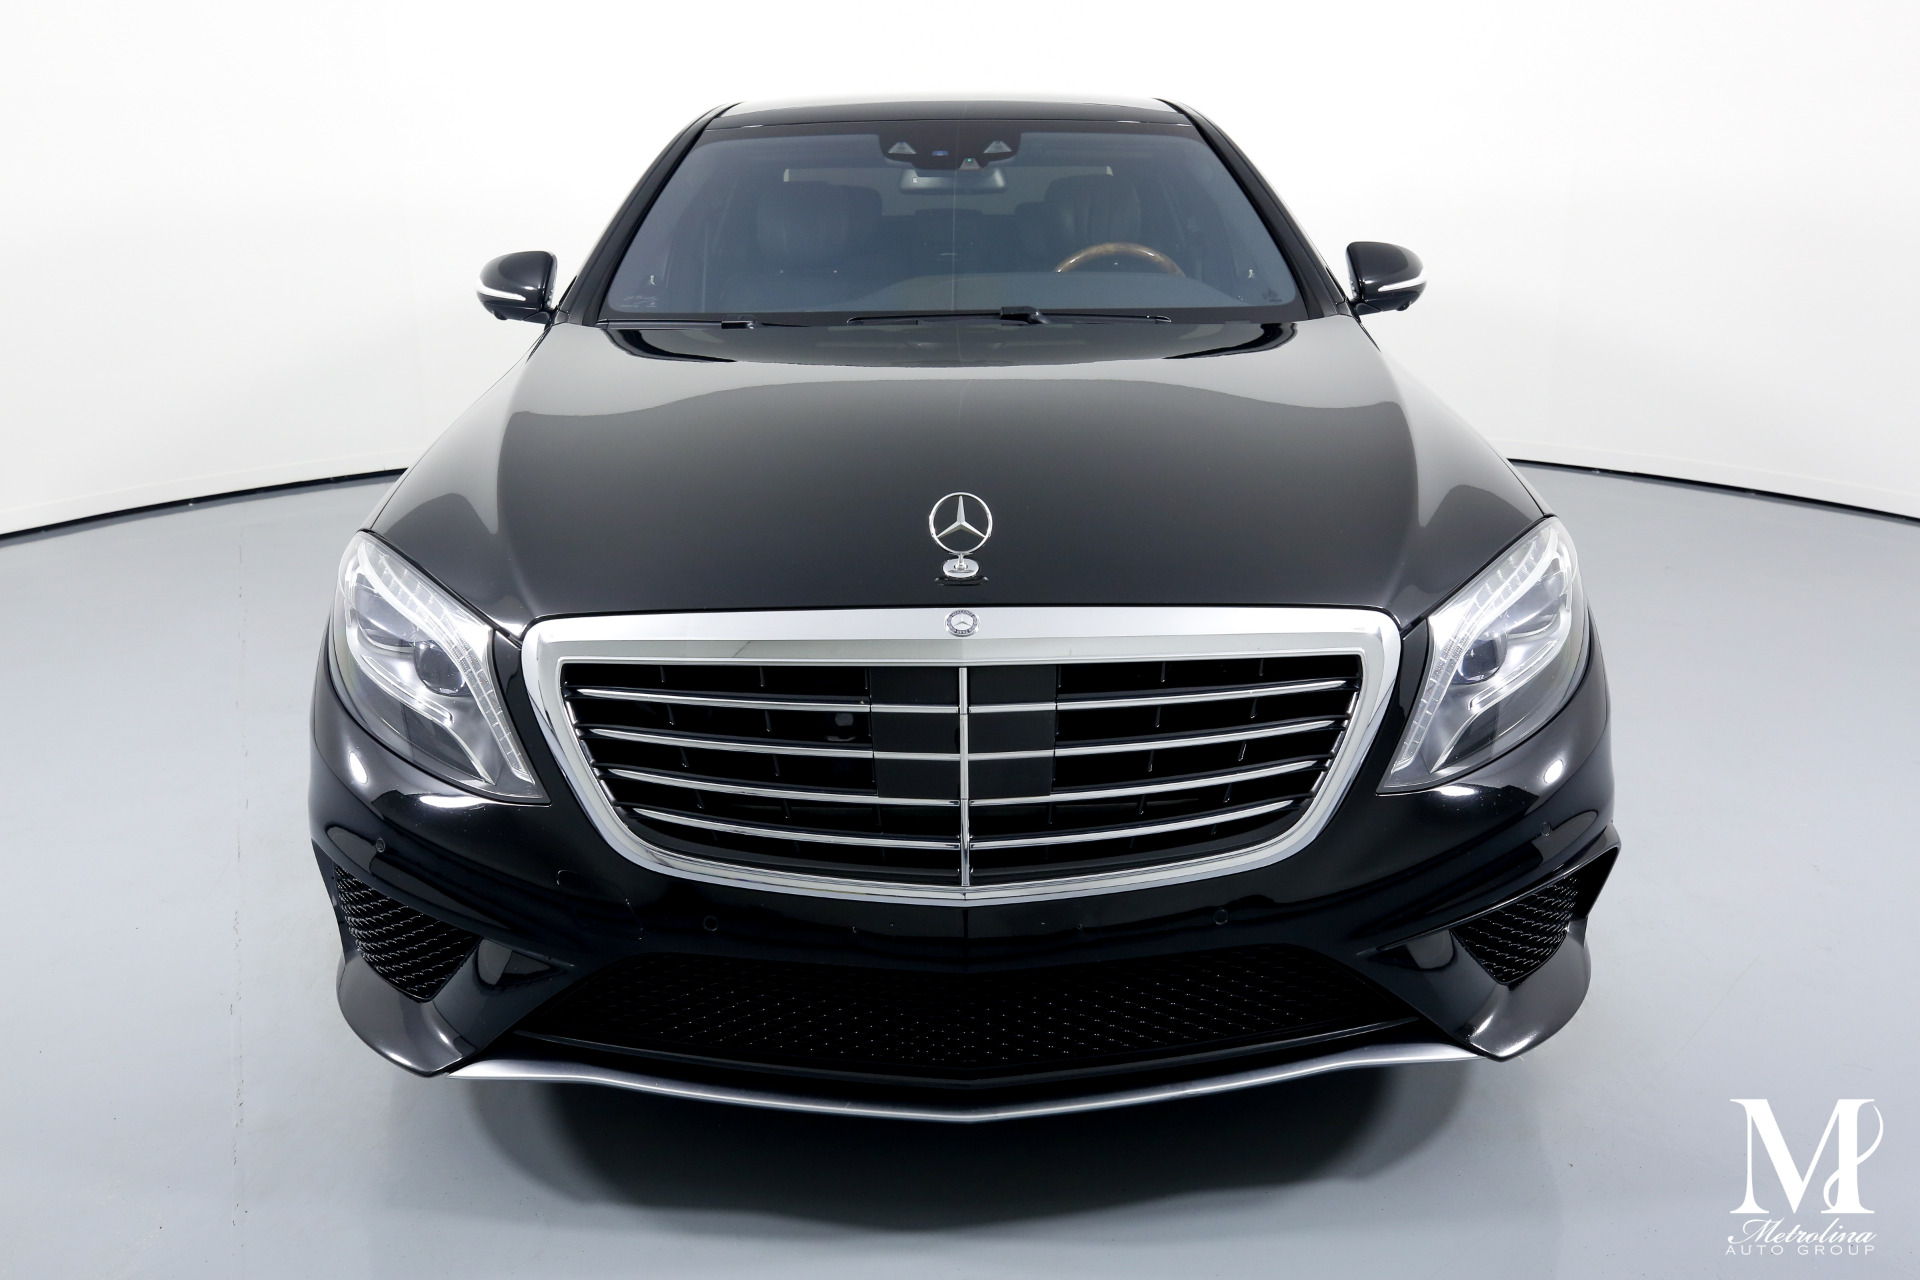 Used 2014 Mercedes-Benz S-Class S 63 AMG for sale Sold at Metrolina Auto Group in Charlotte NC 28217 - 3